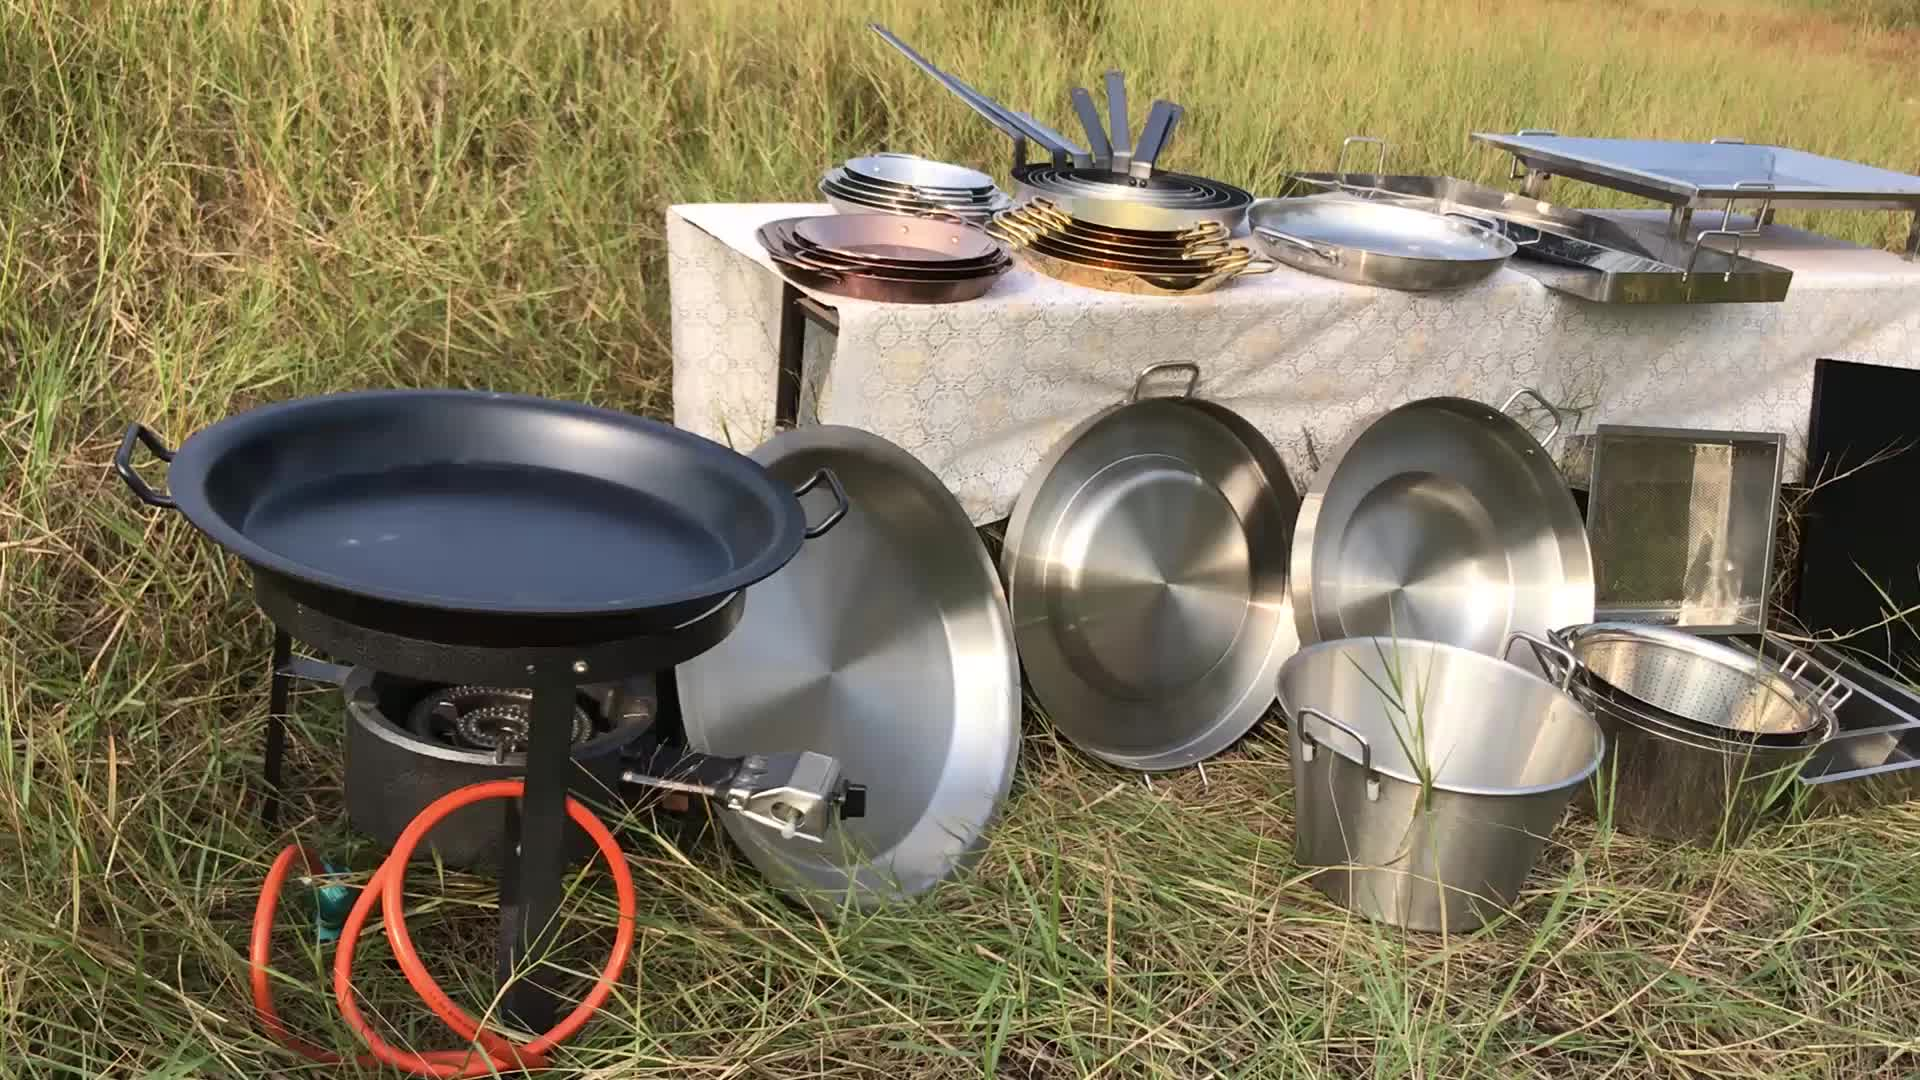 Zero defects outdoor event company gathering garden party nonstick extra large stainless steel hotel dosa paella frying pan